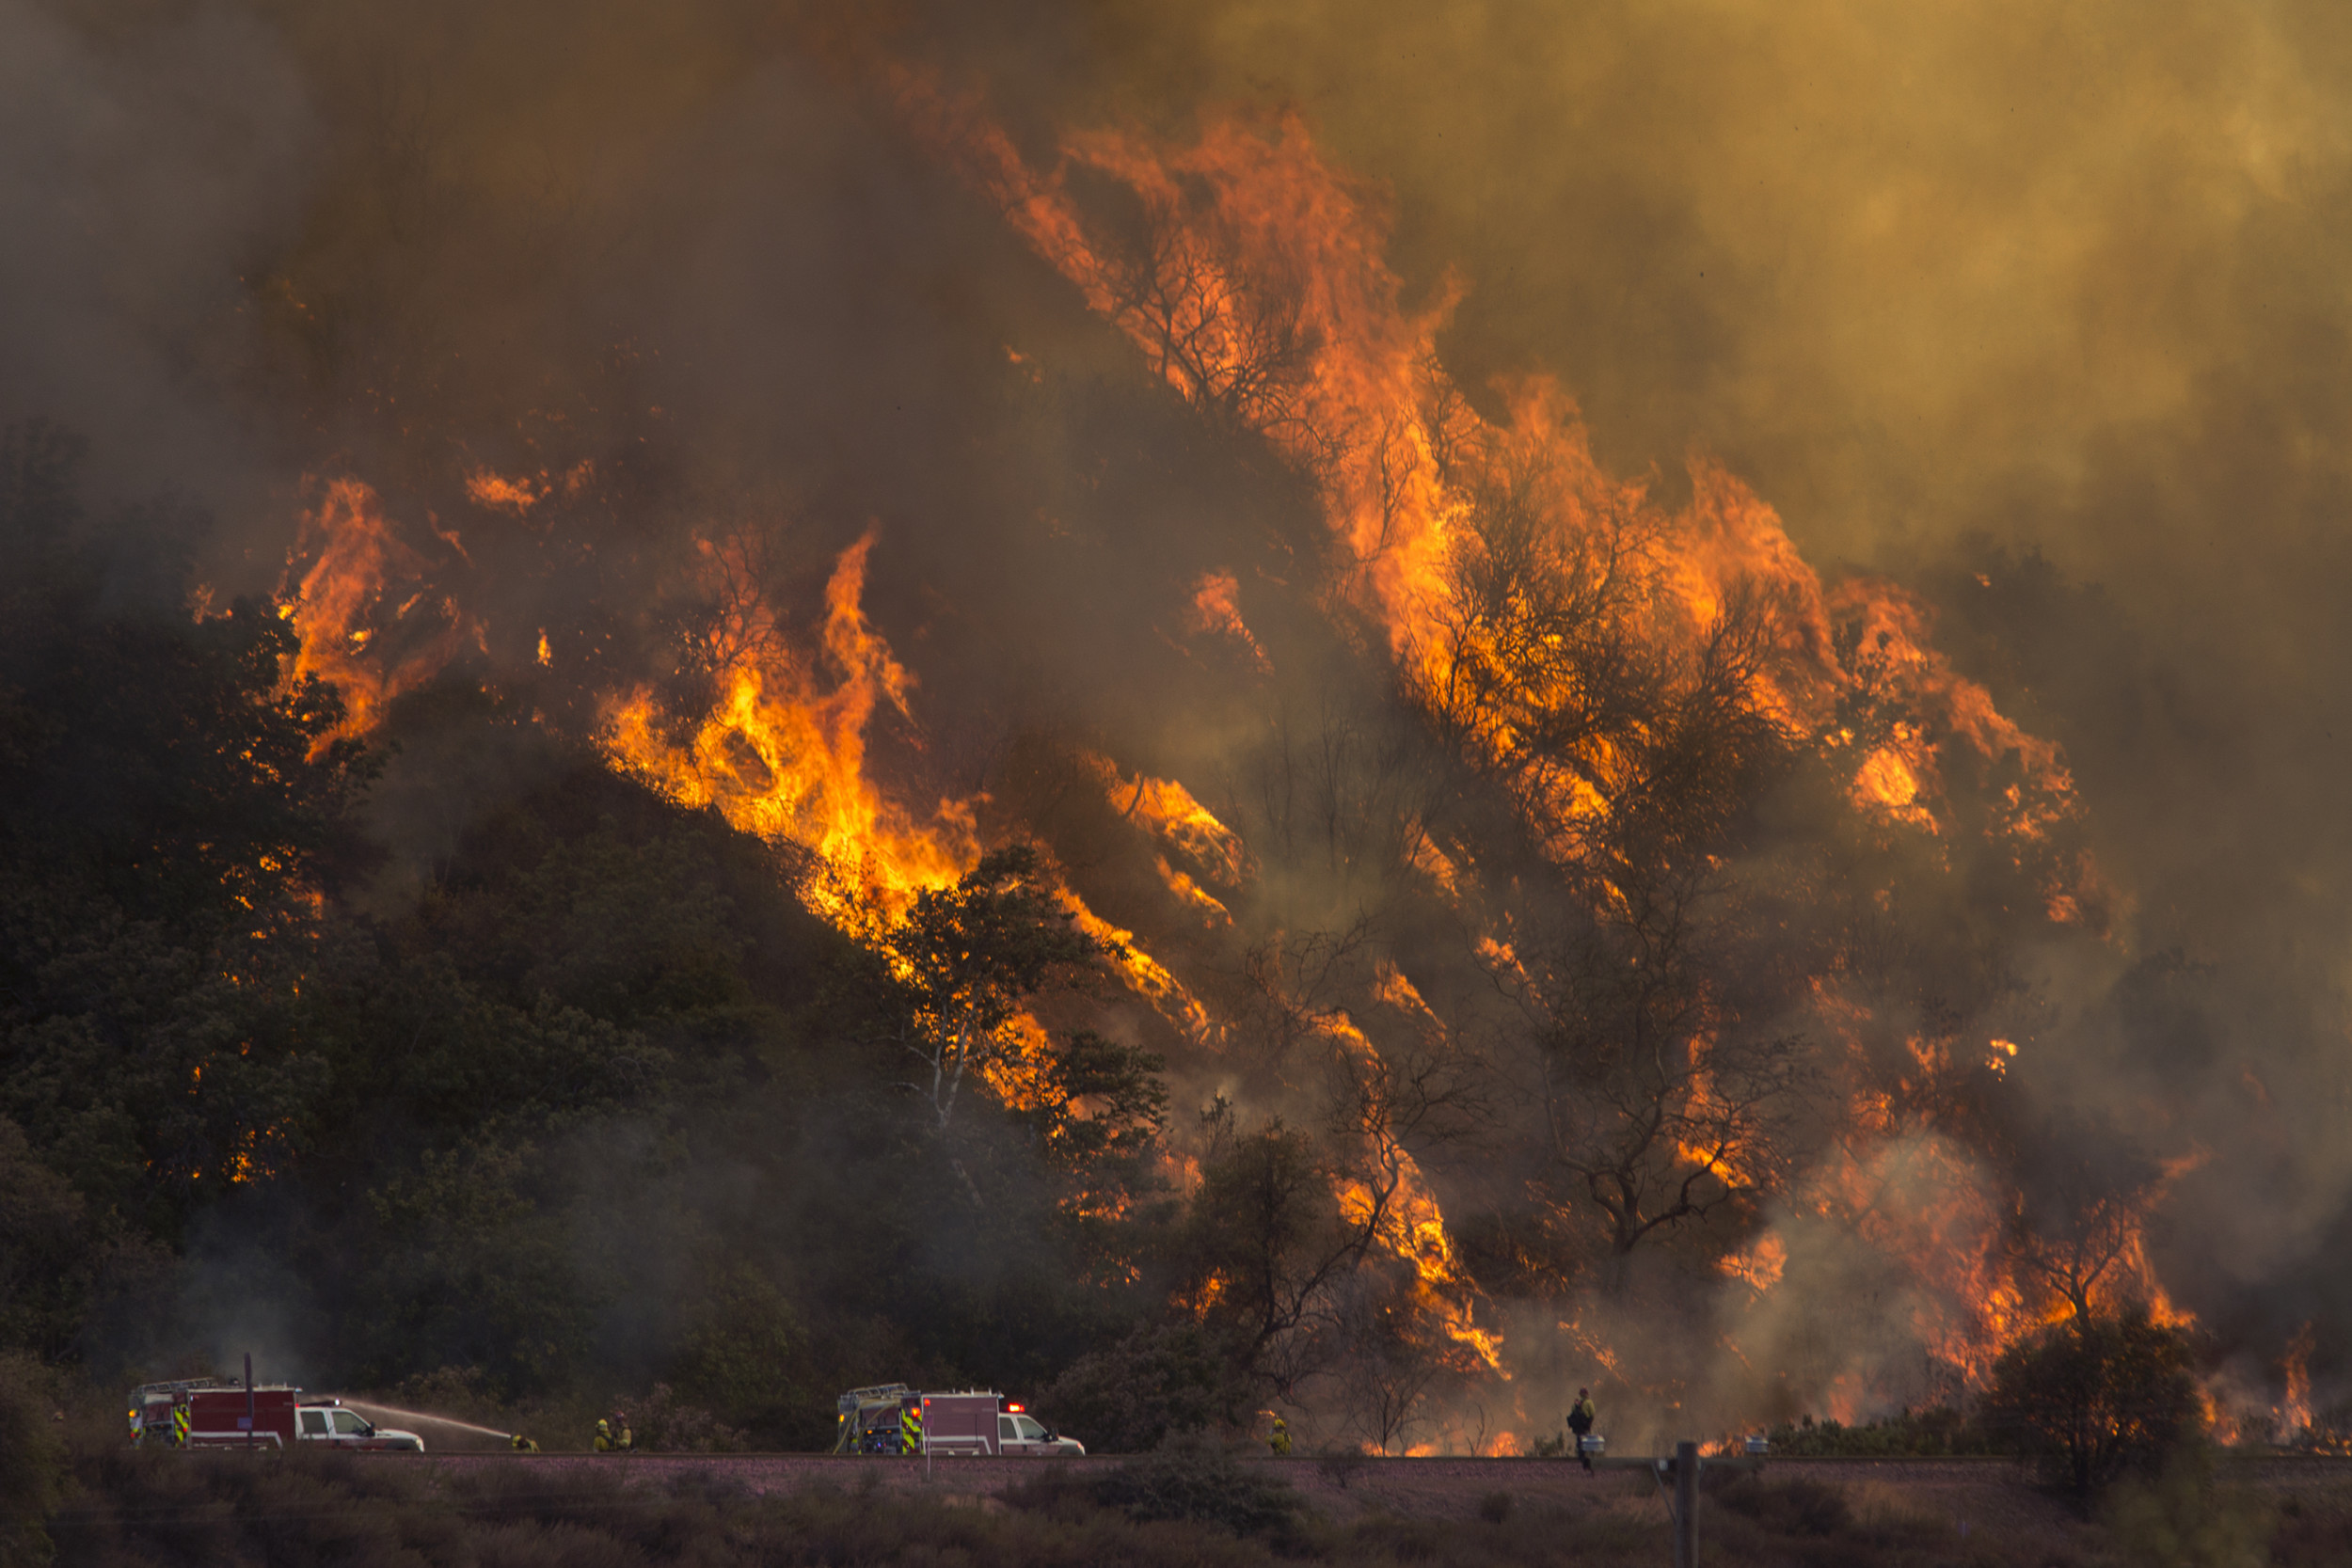 Merrill Fire Update: Evacuations Map After Wildfire Spreads ... on map of penn valley california, map of alexandria california, map of jacksonville california, map of cazadero california, map of isleton california, map of davenport california, map of colusa california, map of west valley california, map of lower lake california, map of middletown california, map of calaveras california, map of california city california, map of tulelake california, map of somerset california, map of junction city california, map of fountain valley california, map of buffalo california, map of rancho murieta california, map of elmira california, map of french gulch california,